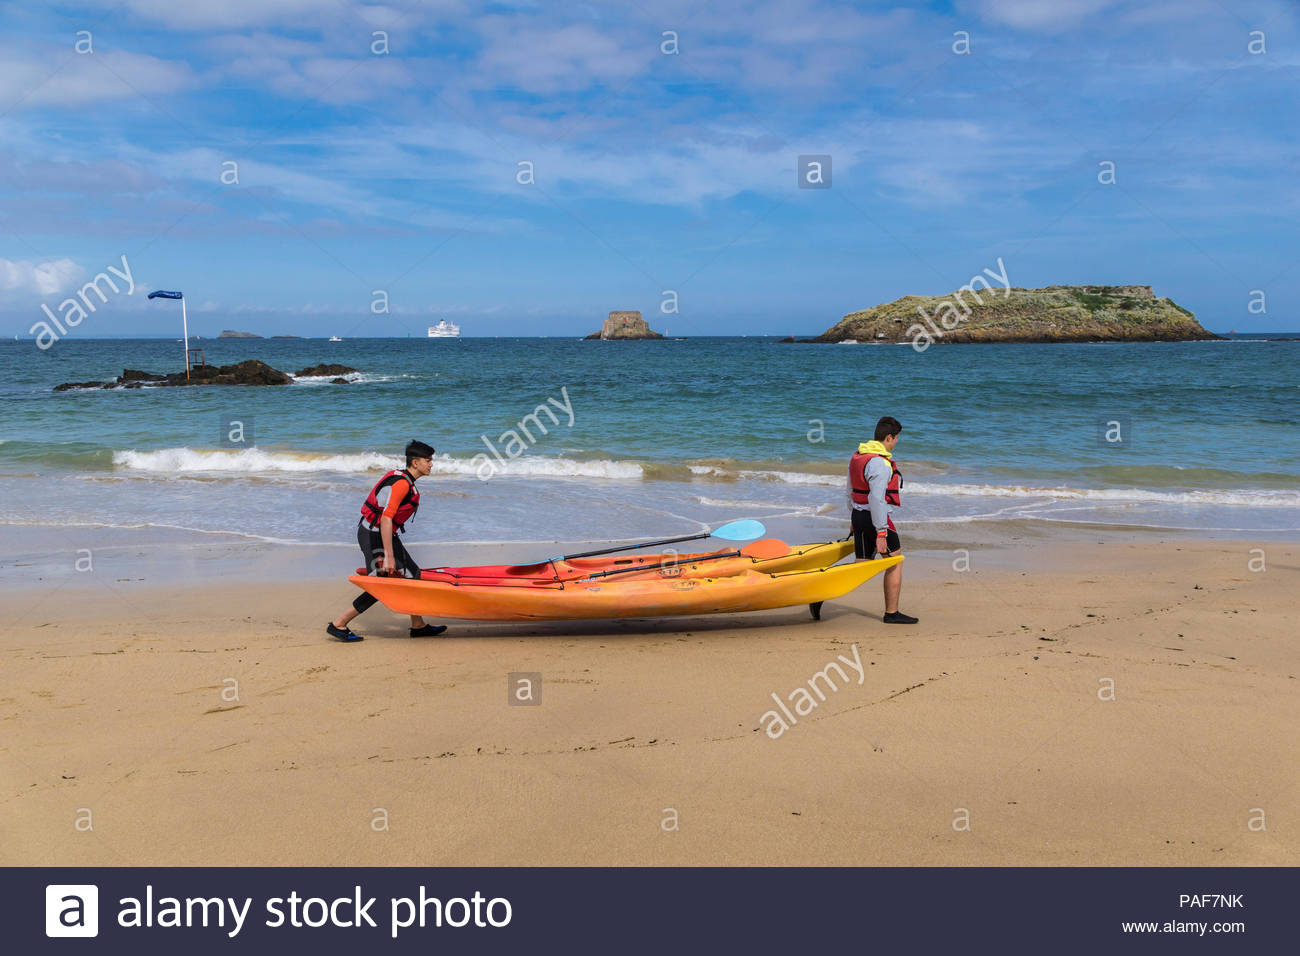 St Malo France Two young people carrying a Canoe In the 1300x956